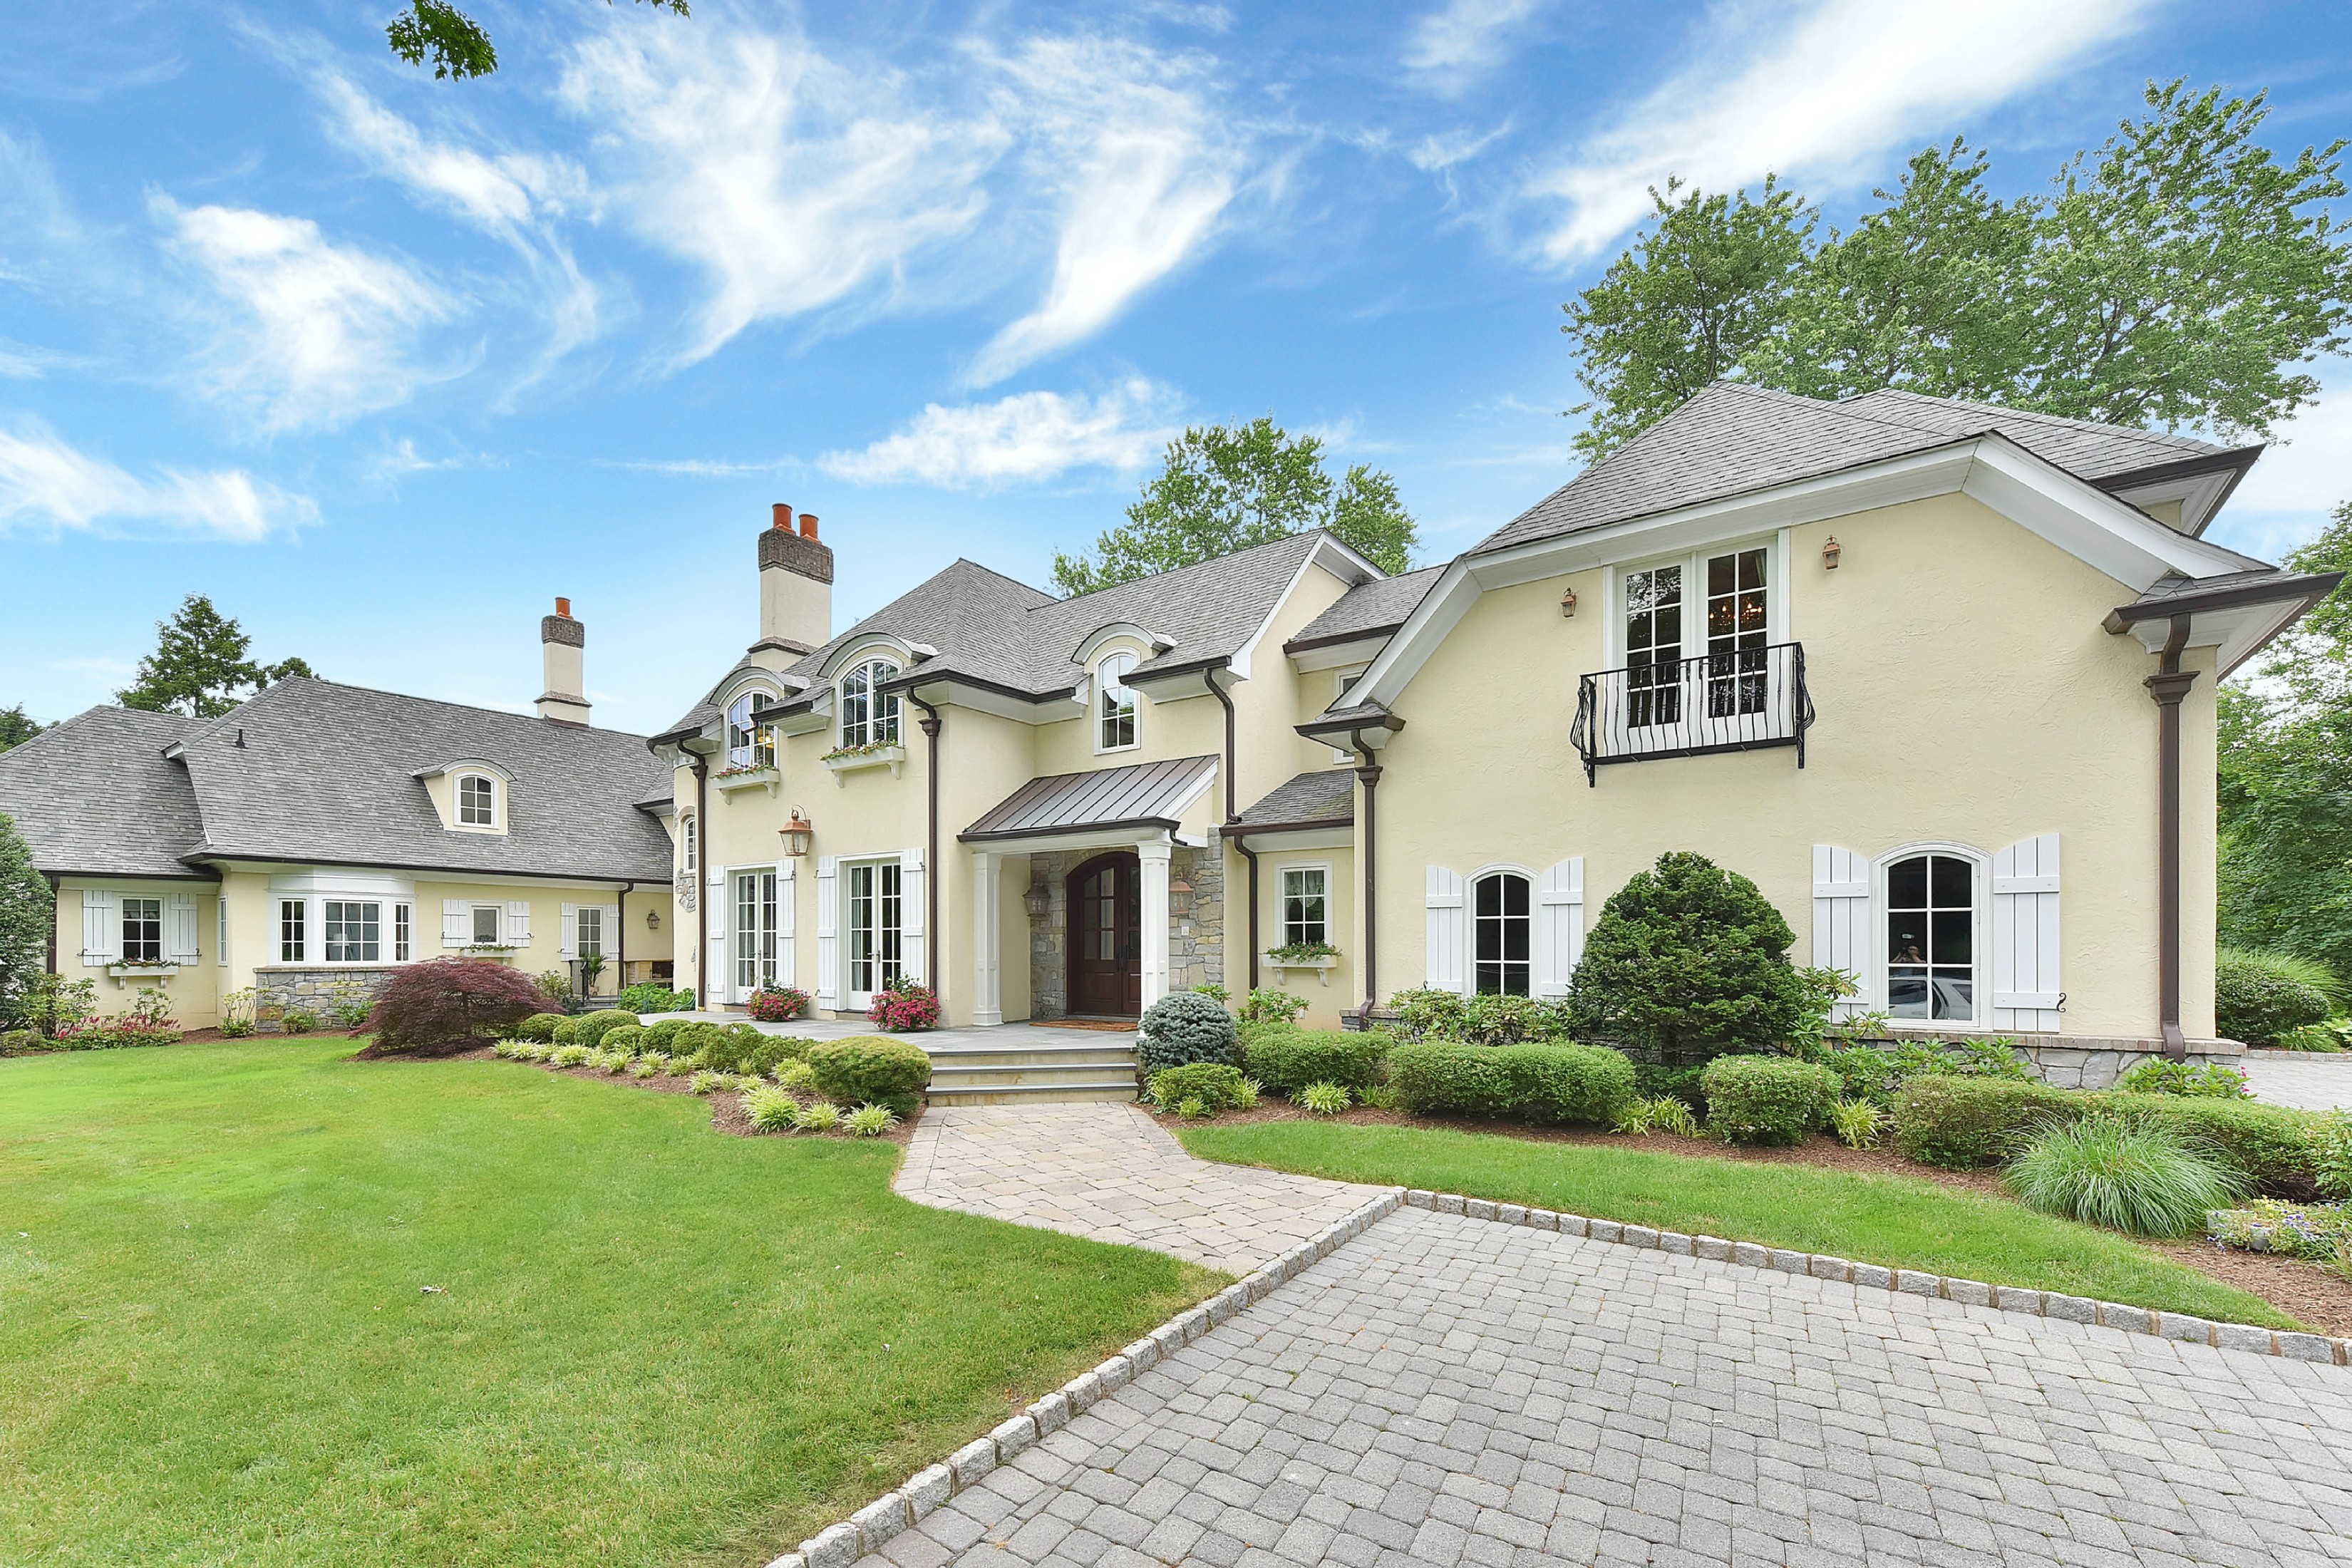 Single Family Home for Sale at Stunning English Manor 551 Overlook Drive Wyckoff, 07481 United States